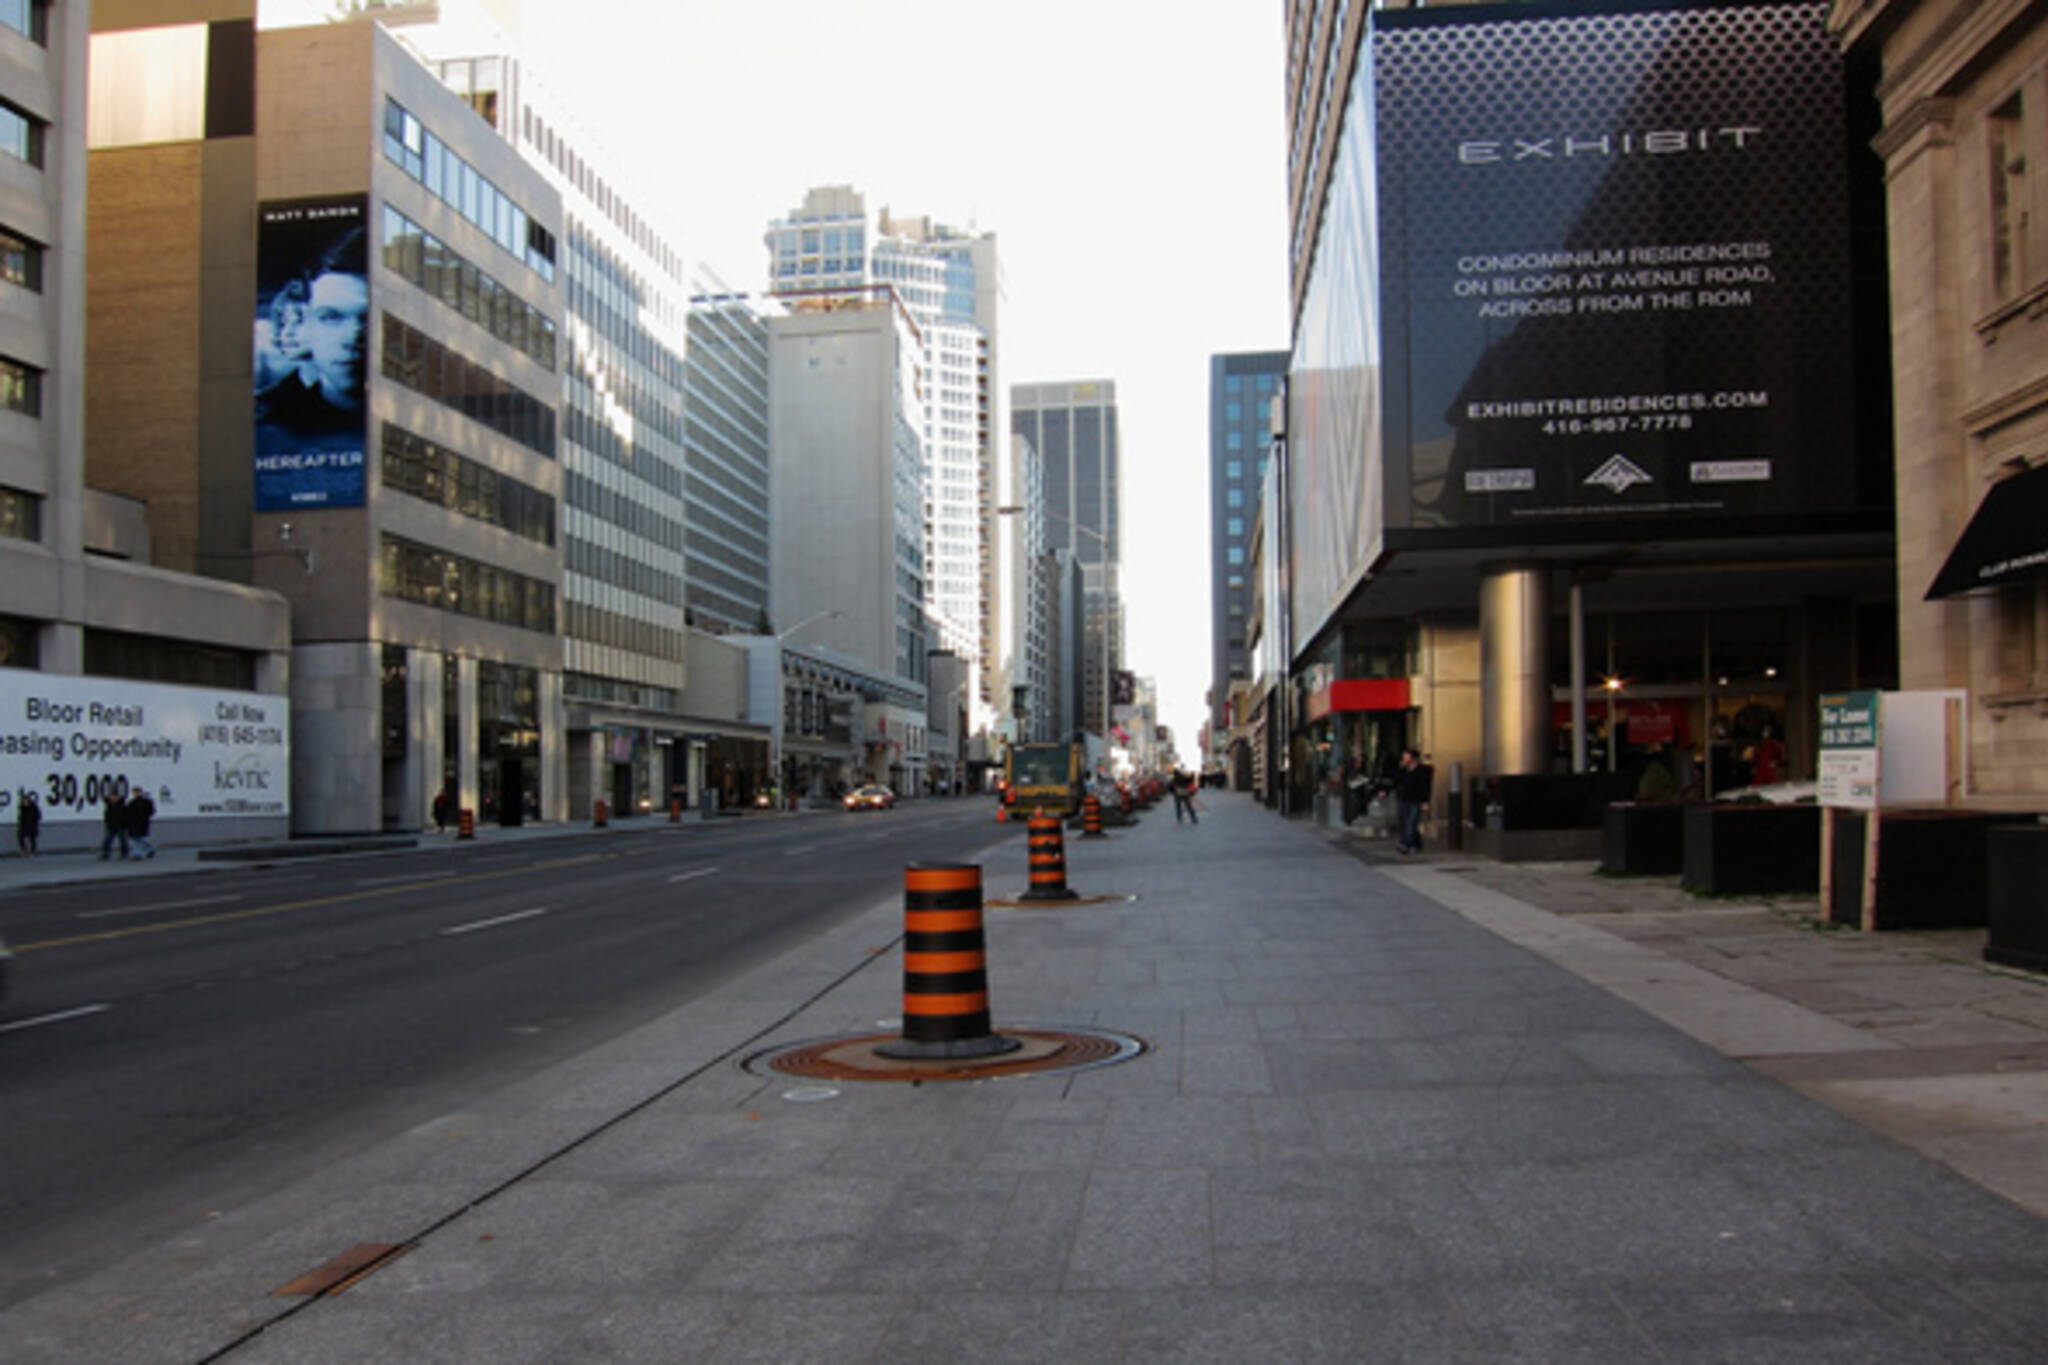 Bloor Street Revitalization